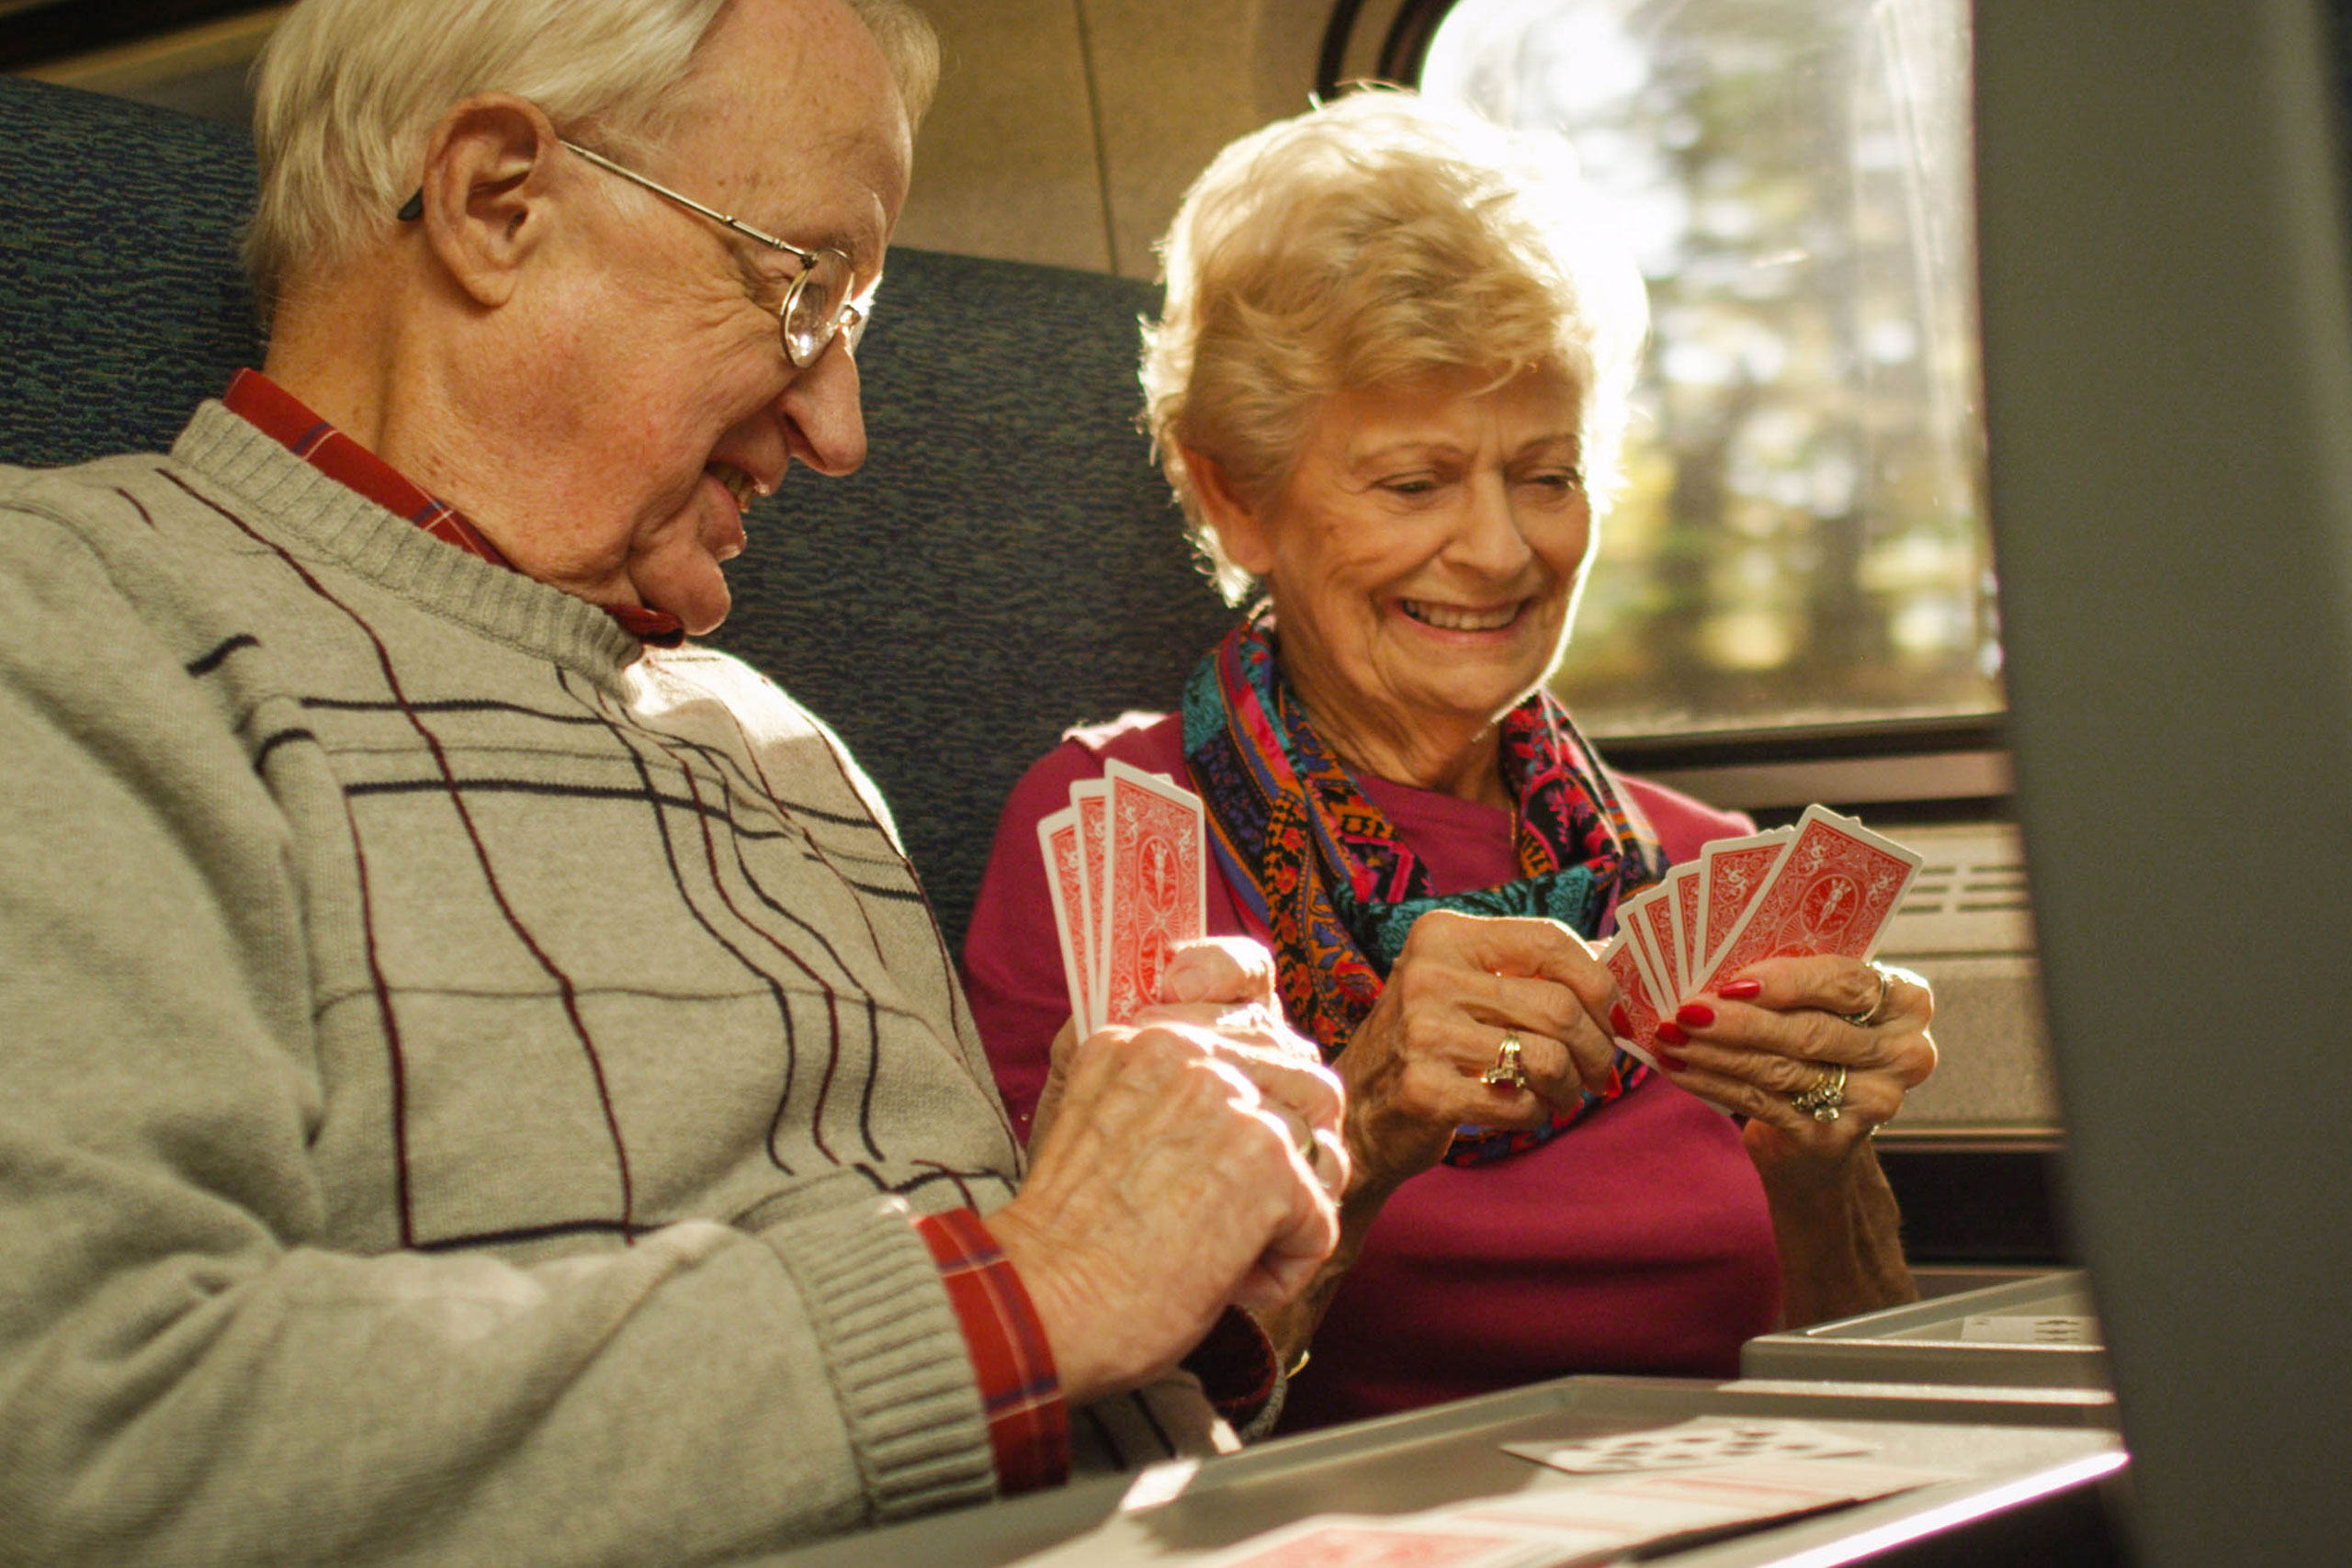 Senior couple smile and play cards on train.